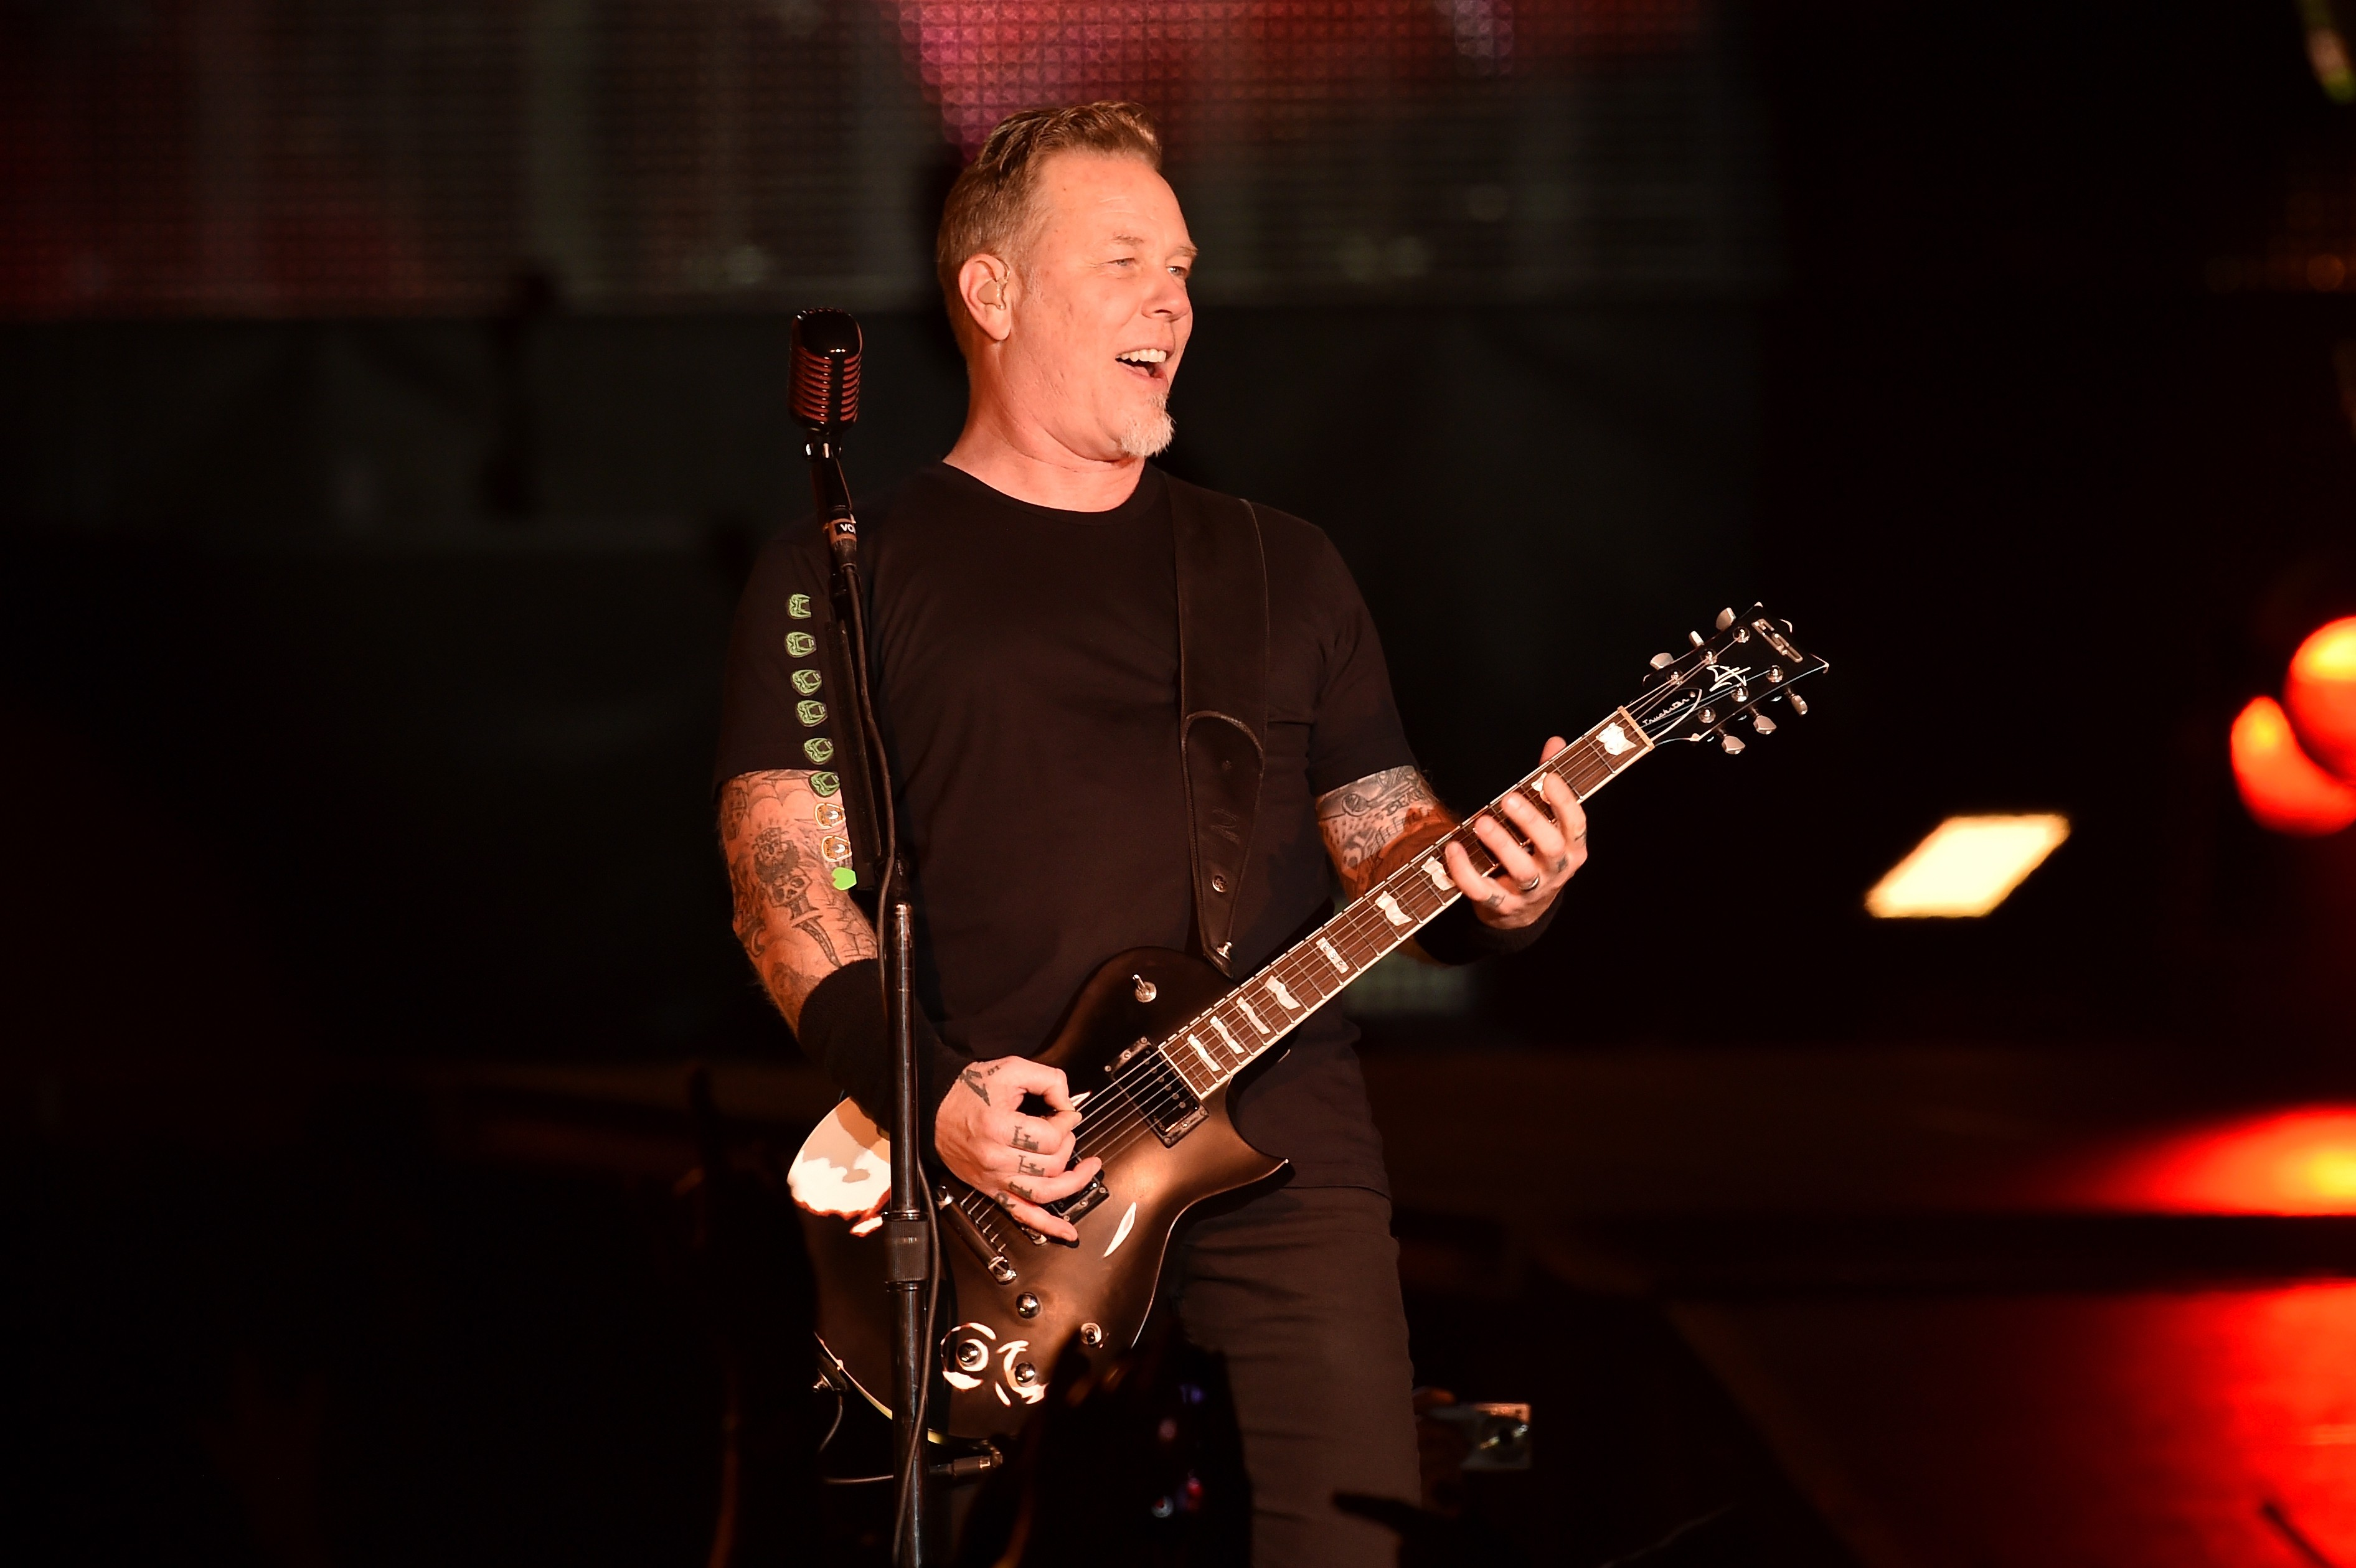 O músico James Hetfield em um show do Metallica (Foto: Getty Images)